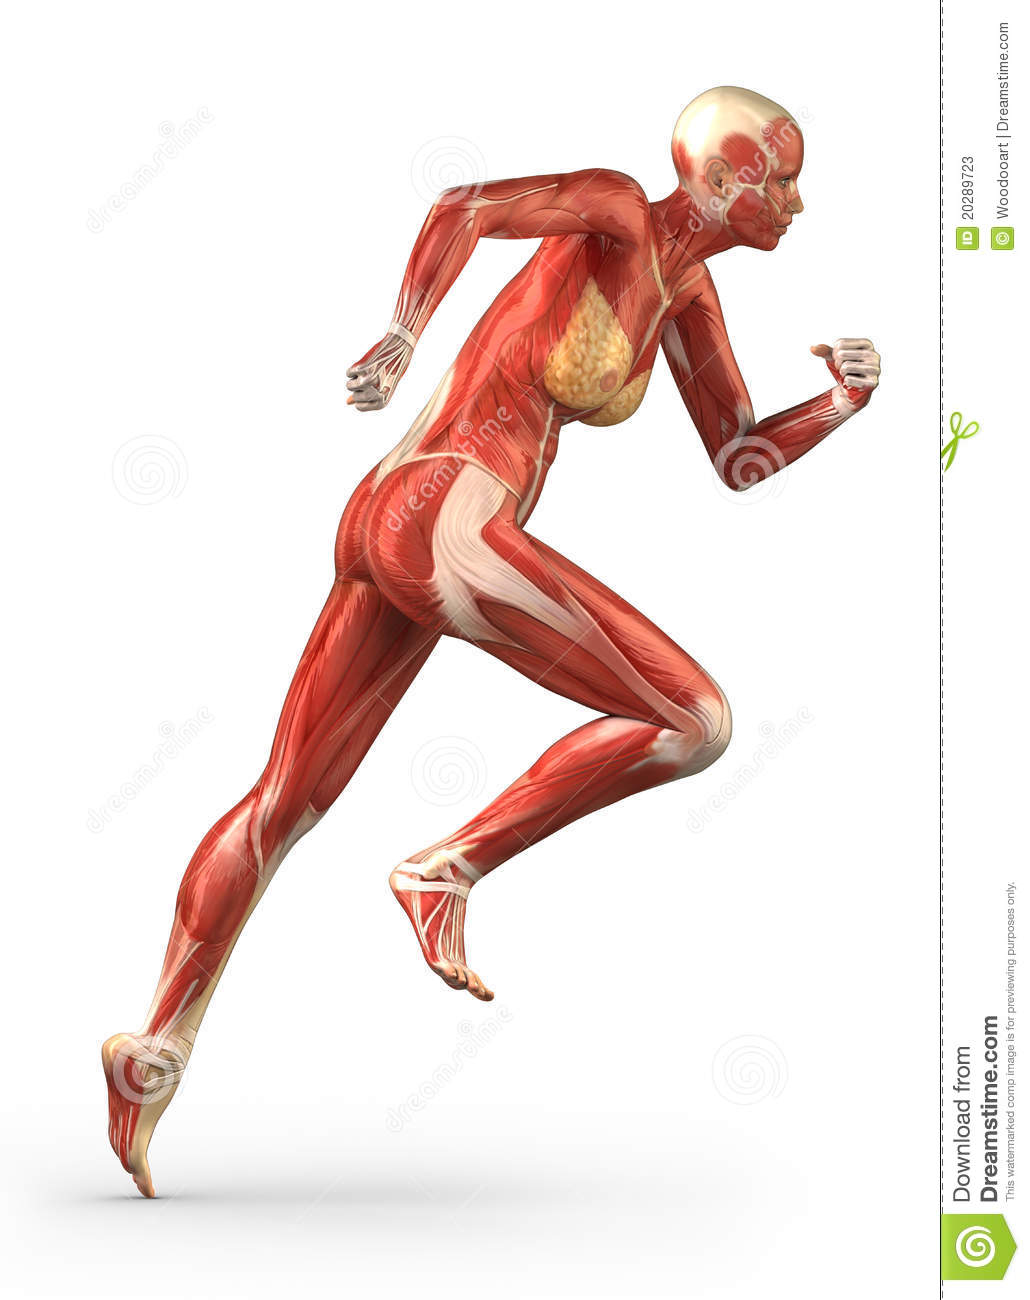 running woman muscular system anatomy lateral view stock photos, Muscles